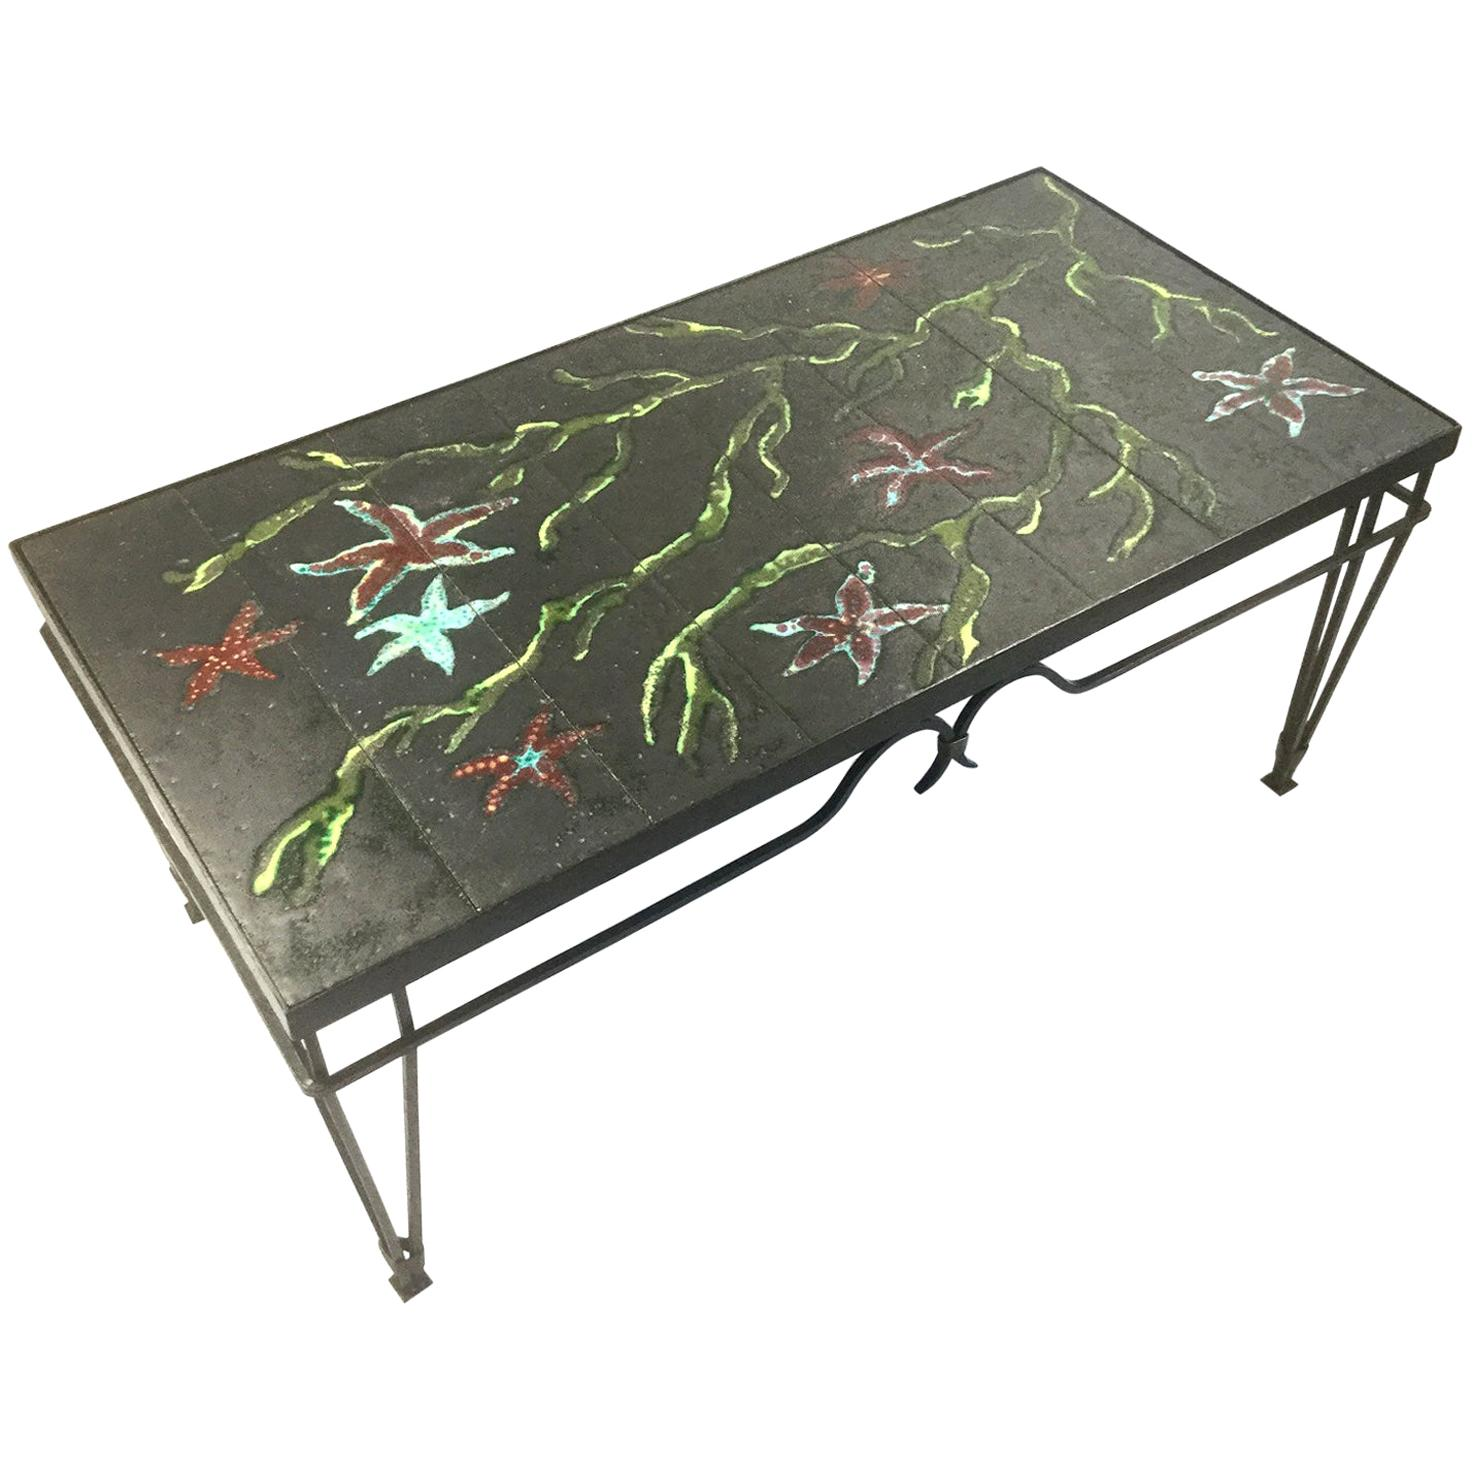 Wrought Iron and Lava Enamel Coffee Table Attributed to Jacques Adnet, 1940s